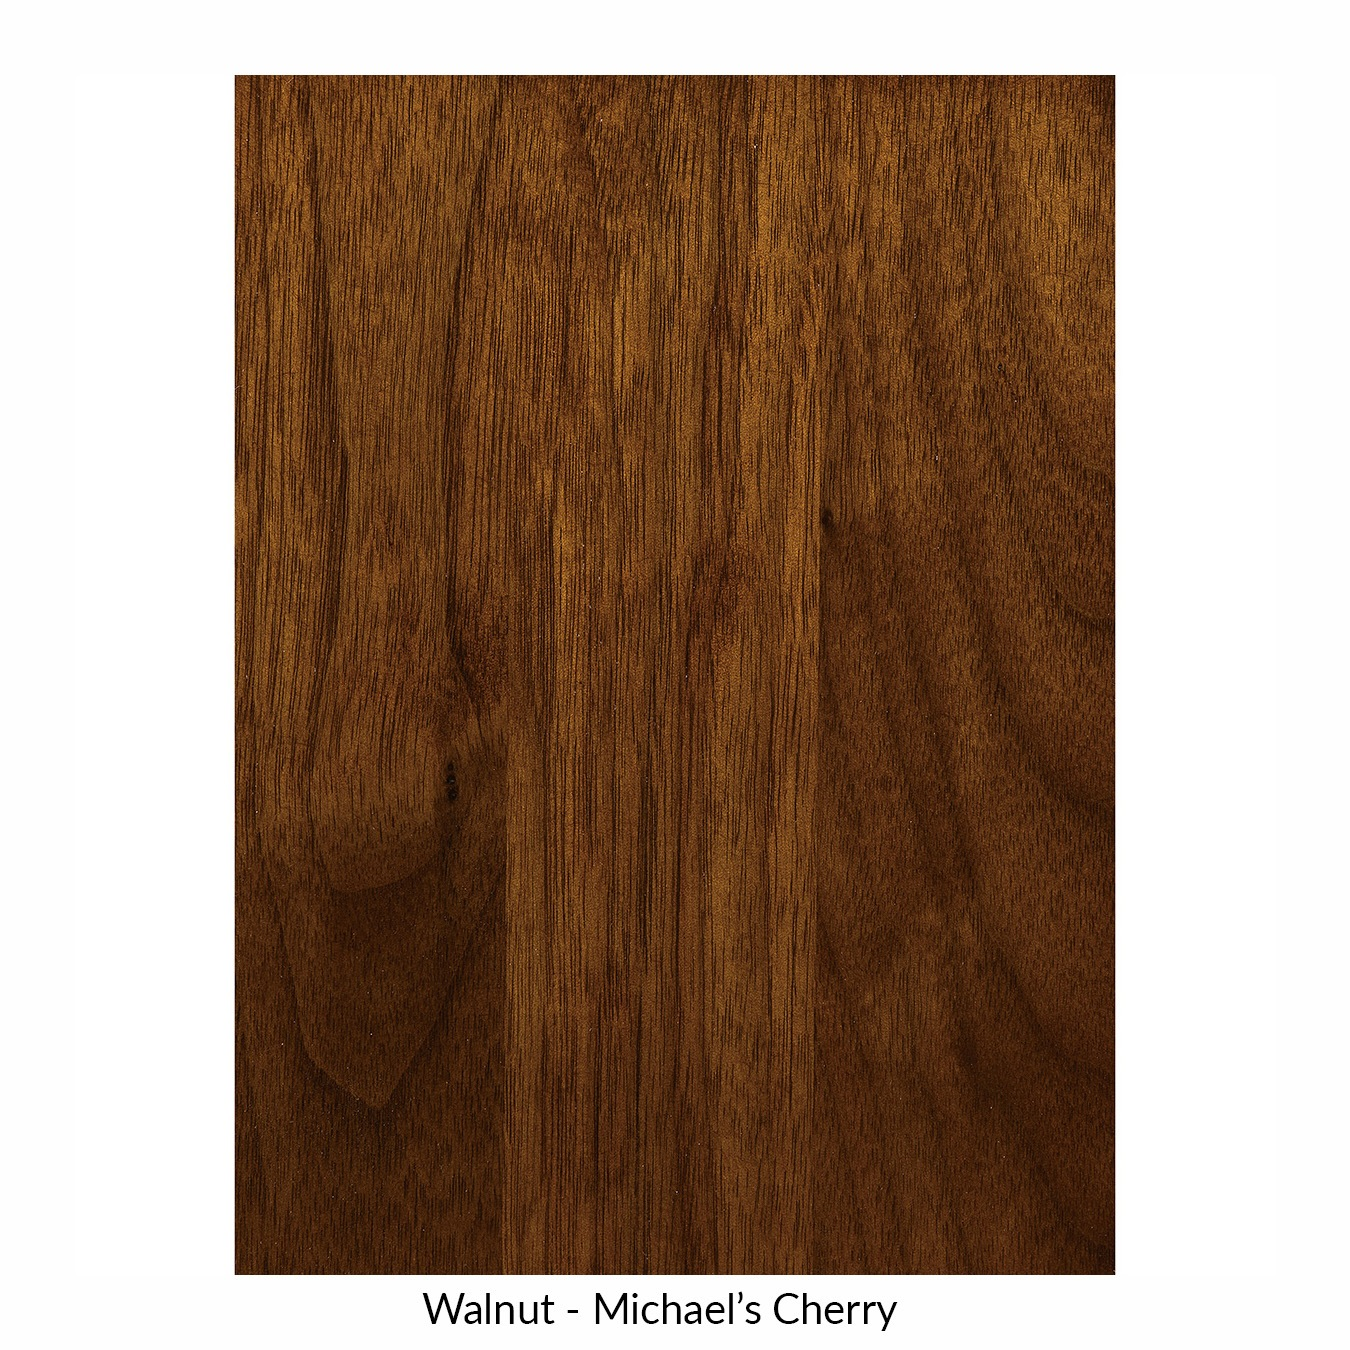 spectrum-walnut-michaels-cherry.jpg